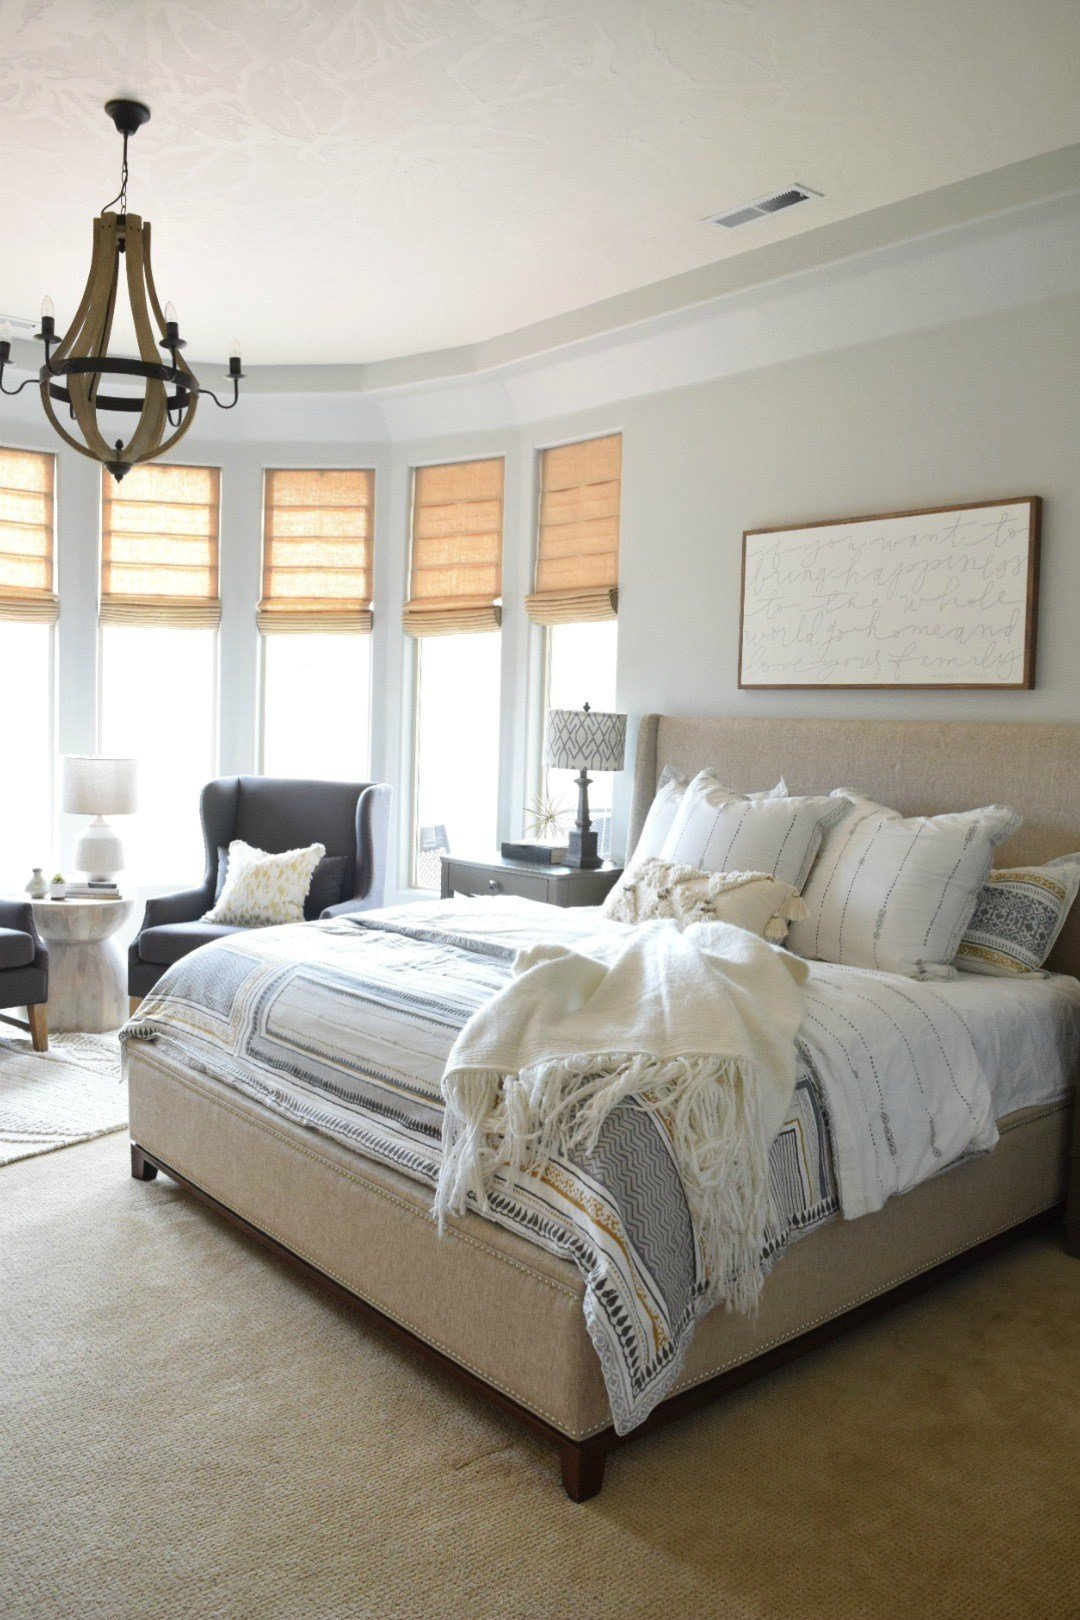 Best Modern Home Refresh With Simply White Paint Nesting With With Pictures